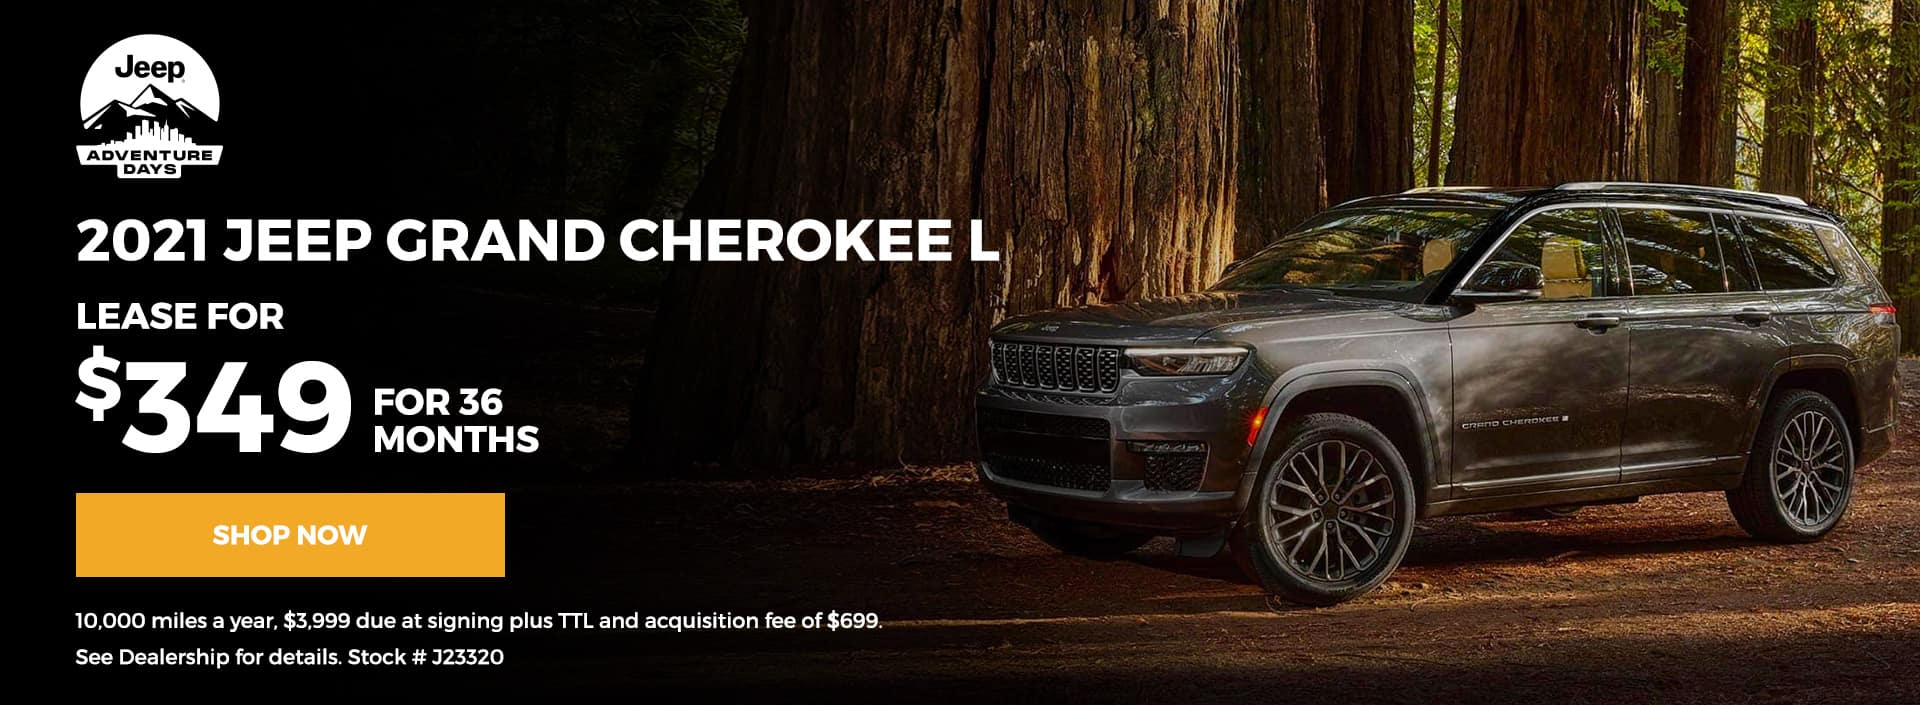 Grand Cherokee L Lease 36 months for $349